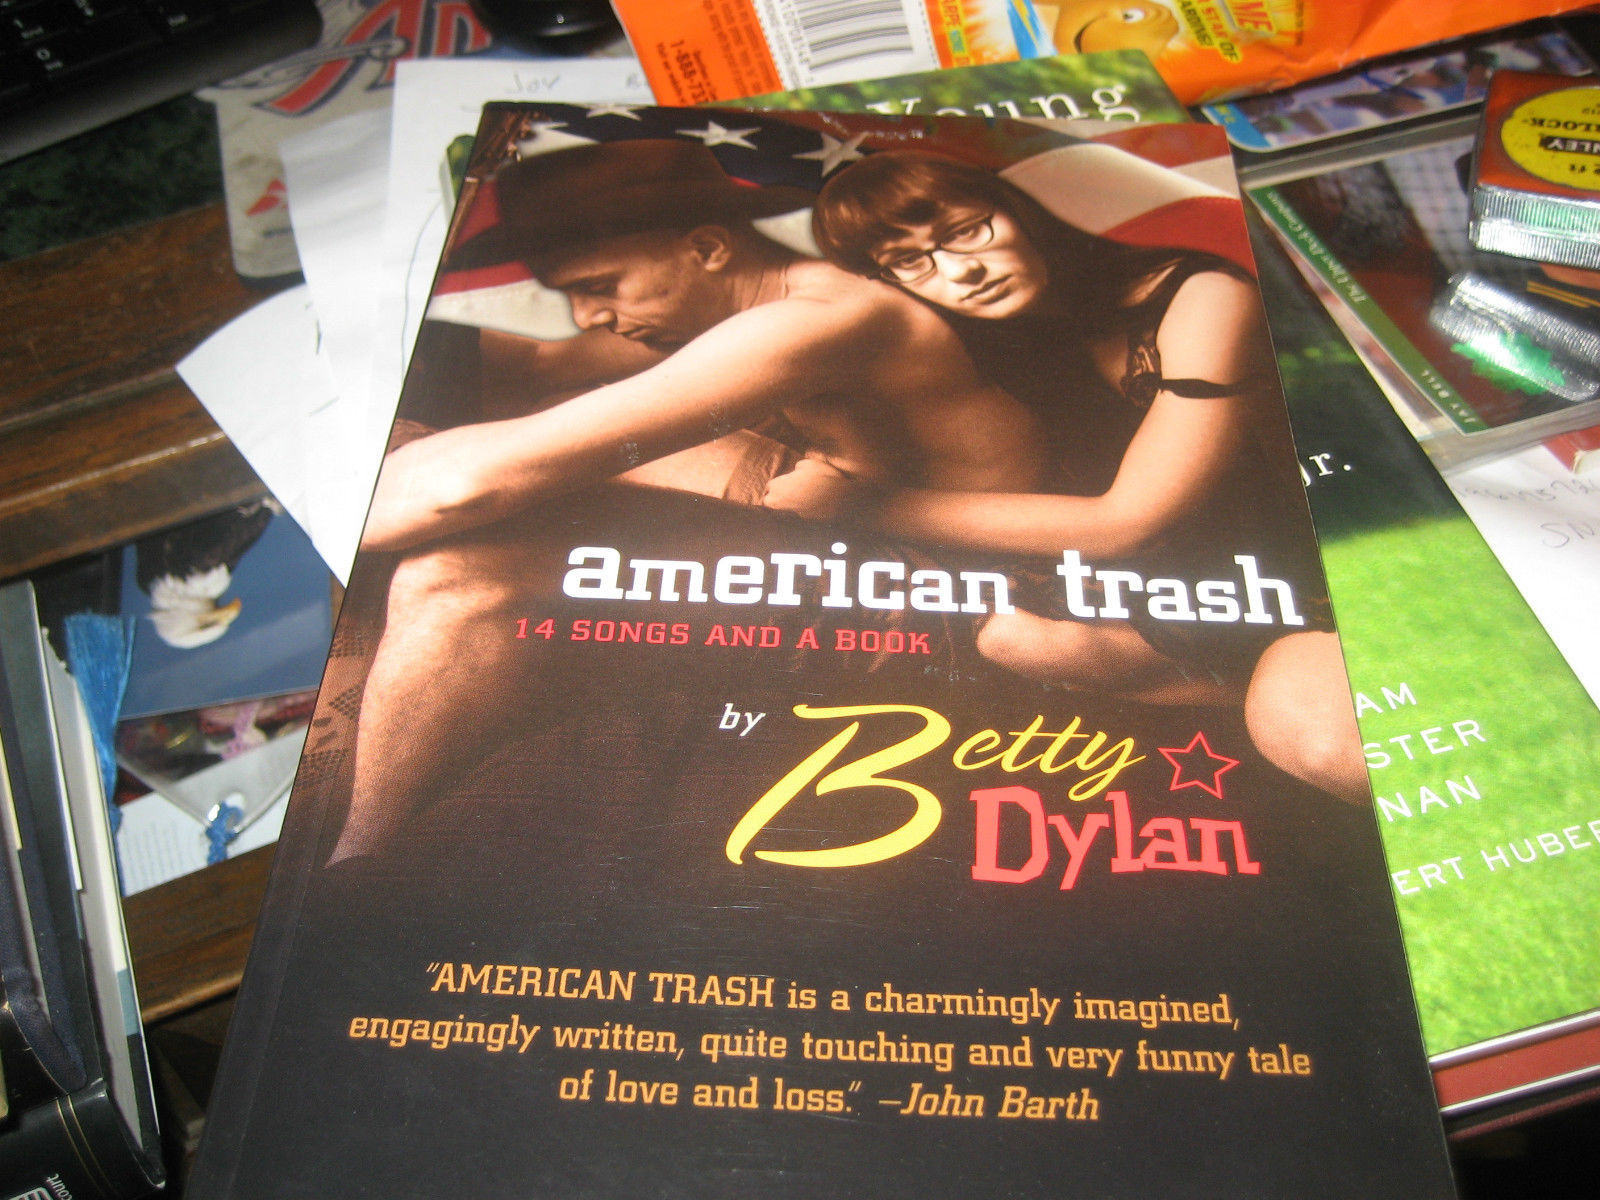 American Trash: 14 Songs and a Book SIGNED by Vickie Dubelman